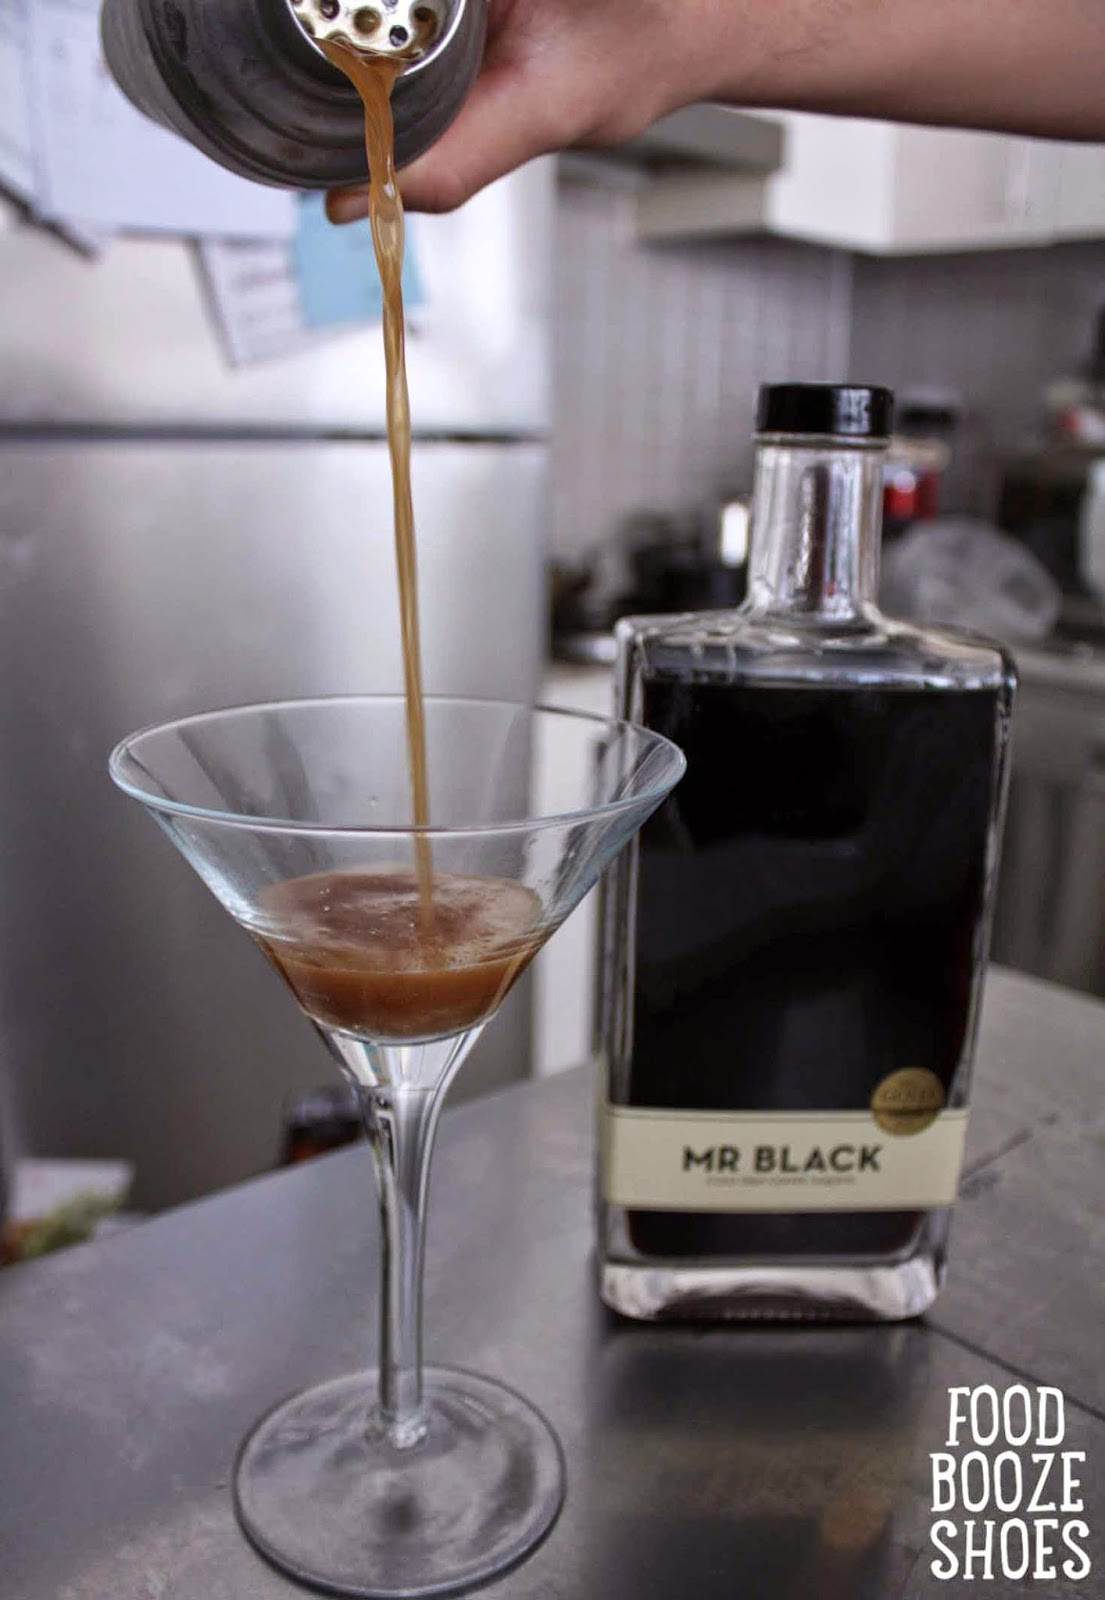 Food, booze and shoes: Meet MR BLACK at The Grind House pop-up